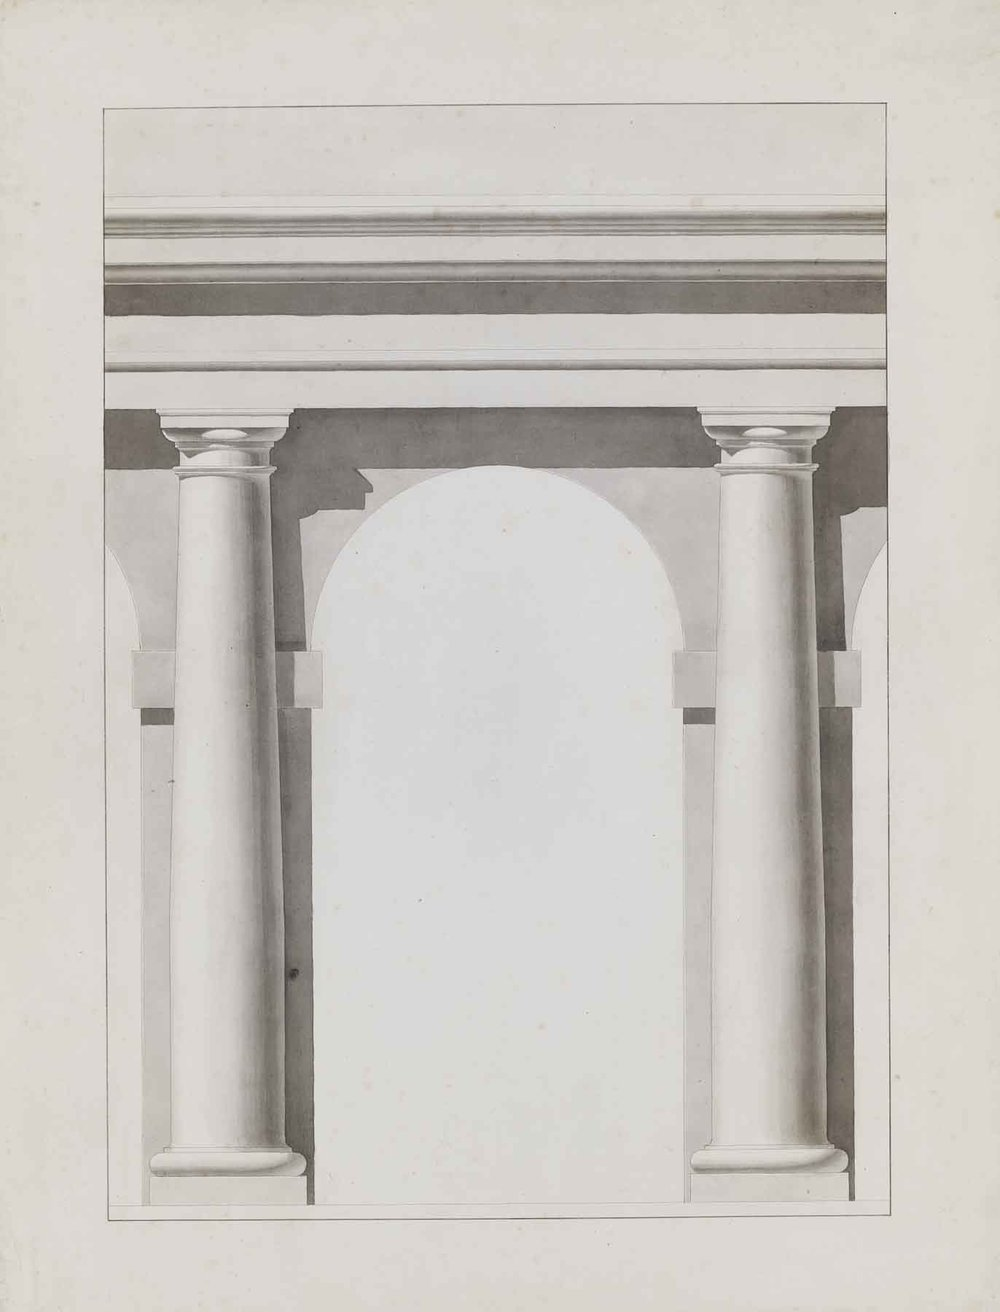 "Théodore Olivier,  Study of Columns,  c. 1840, ink and lavis (wash) on paper, 31 1/2 x 25 1/2"" framed"